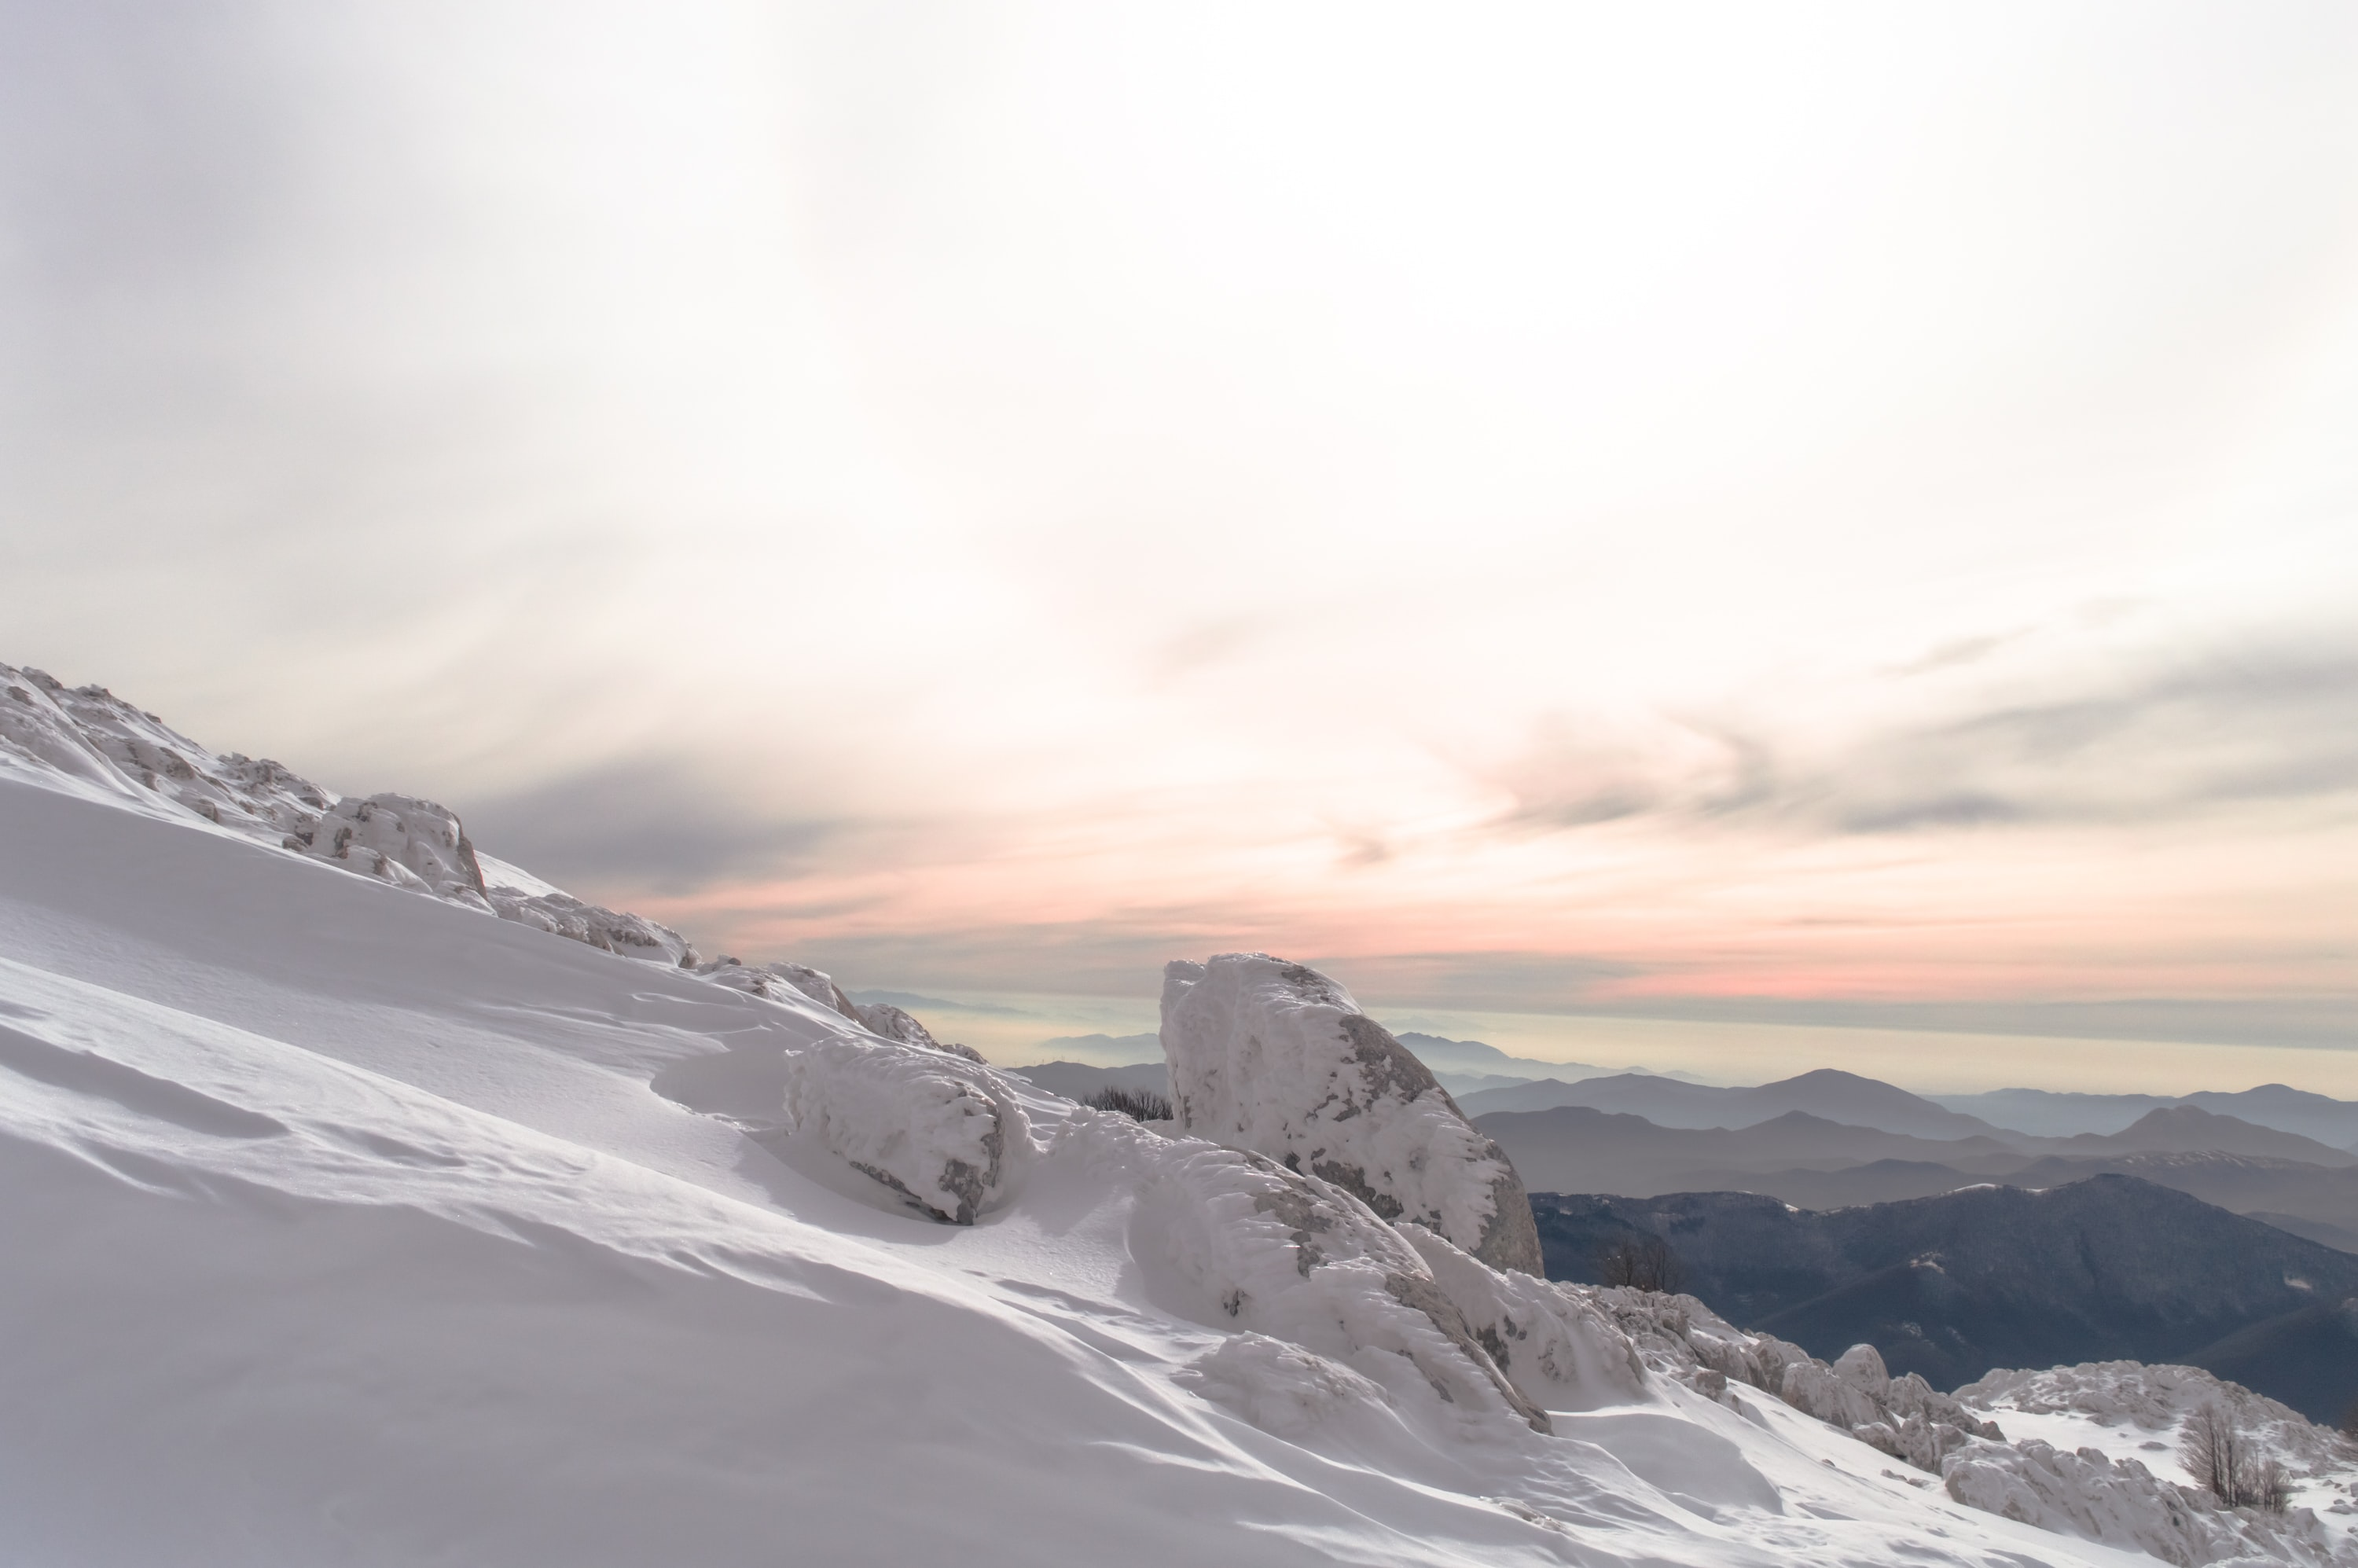 A sunset taken on top of a snow covered mountain